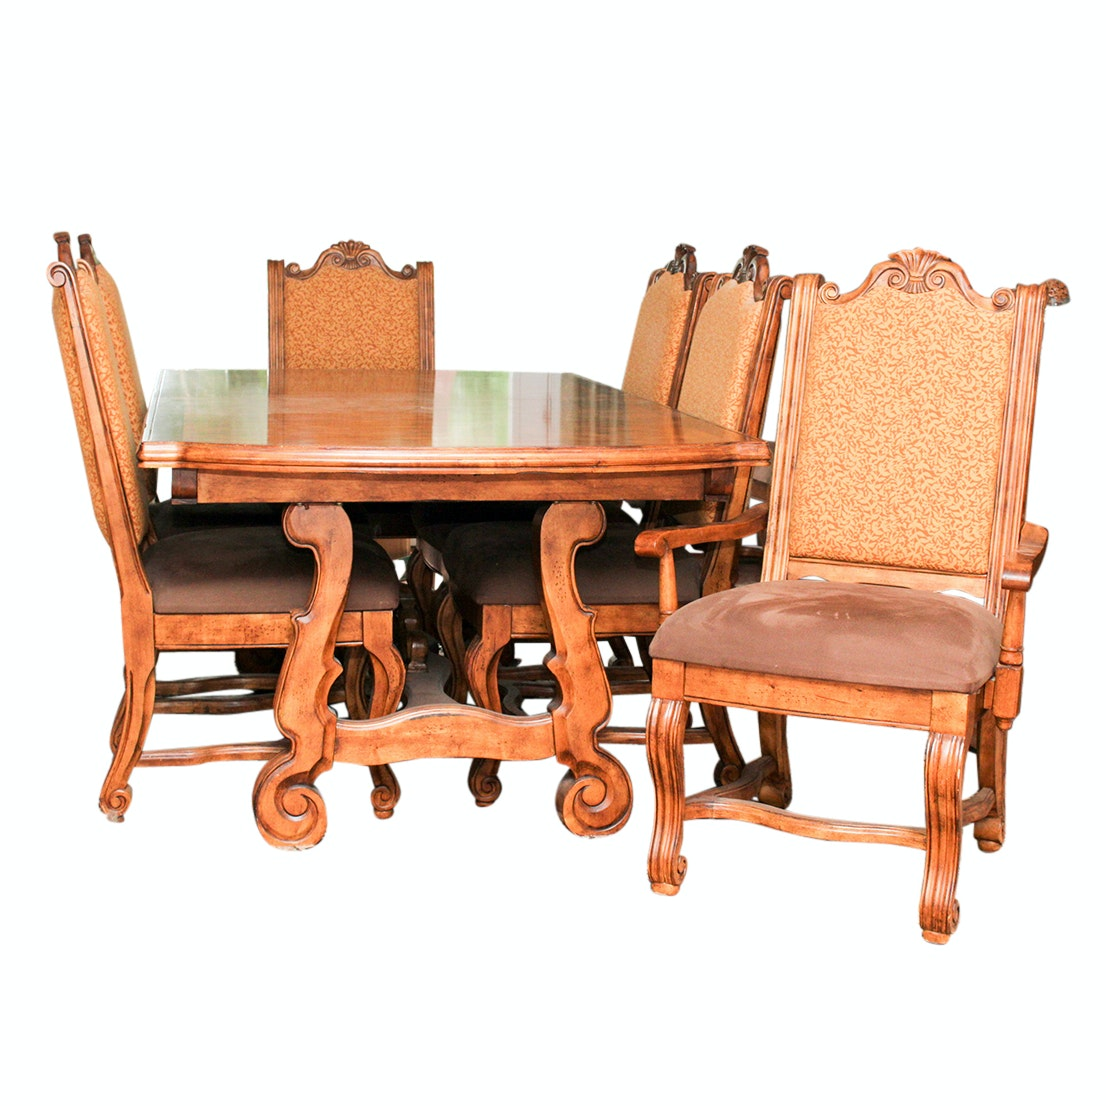 Ashley Furniture Rustic Birch Dining Table and Chairs